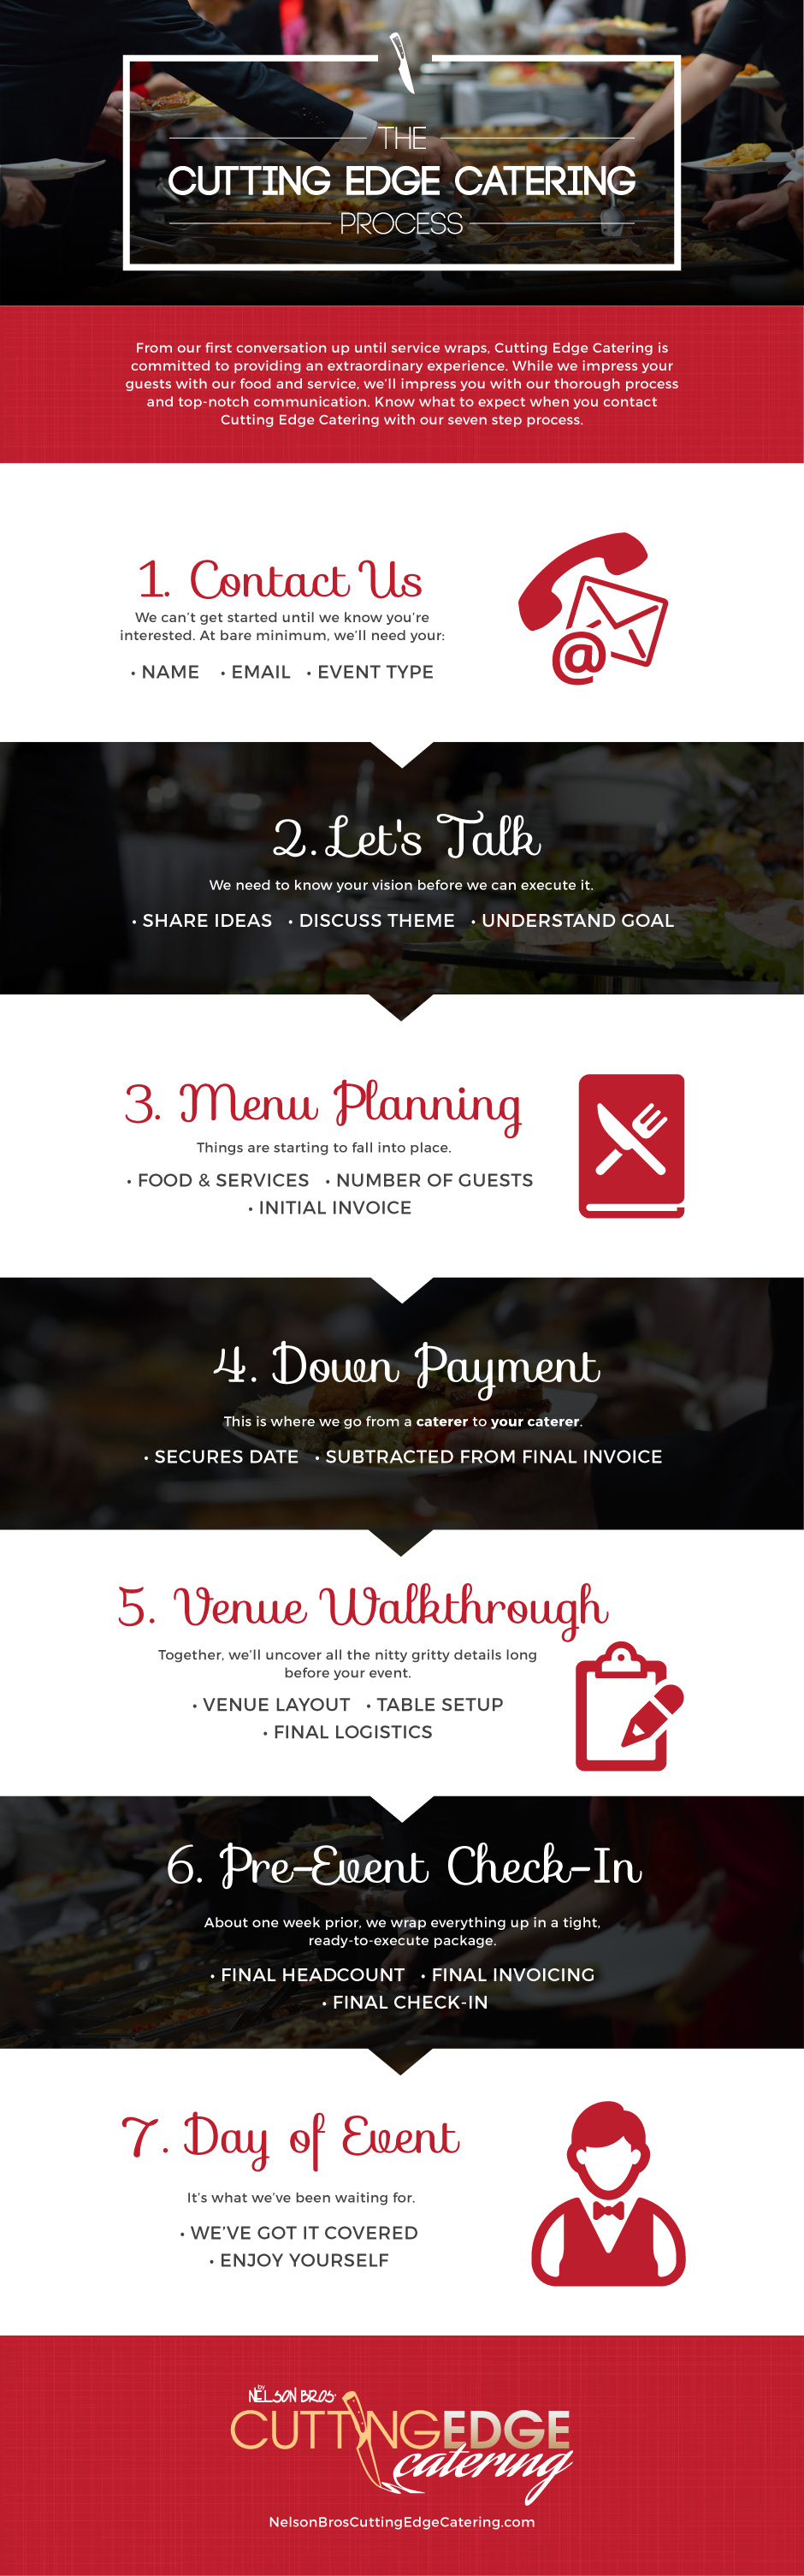 Catering Cutting Edge Catering Process Infographic